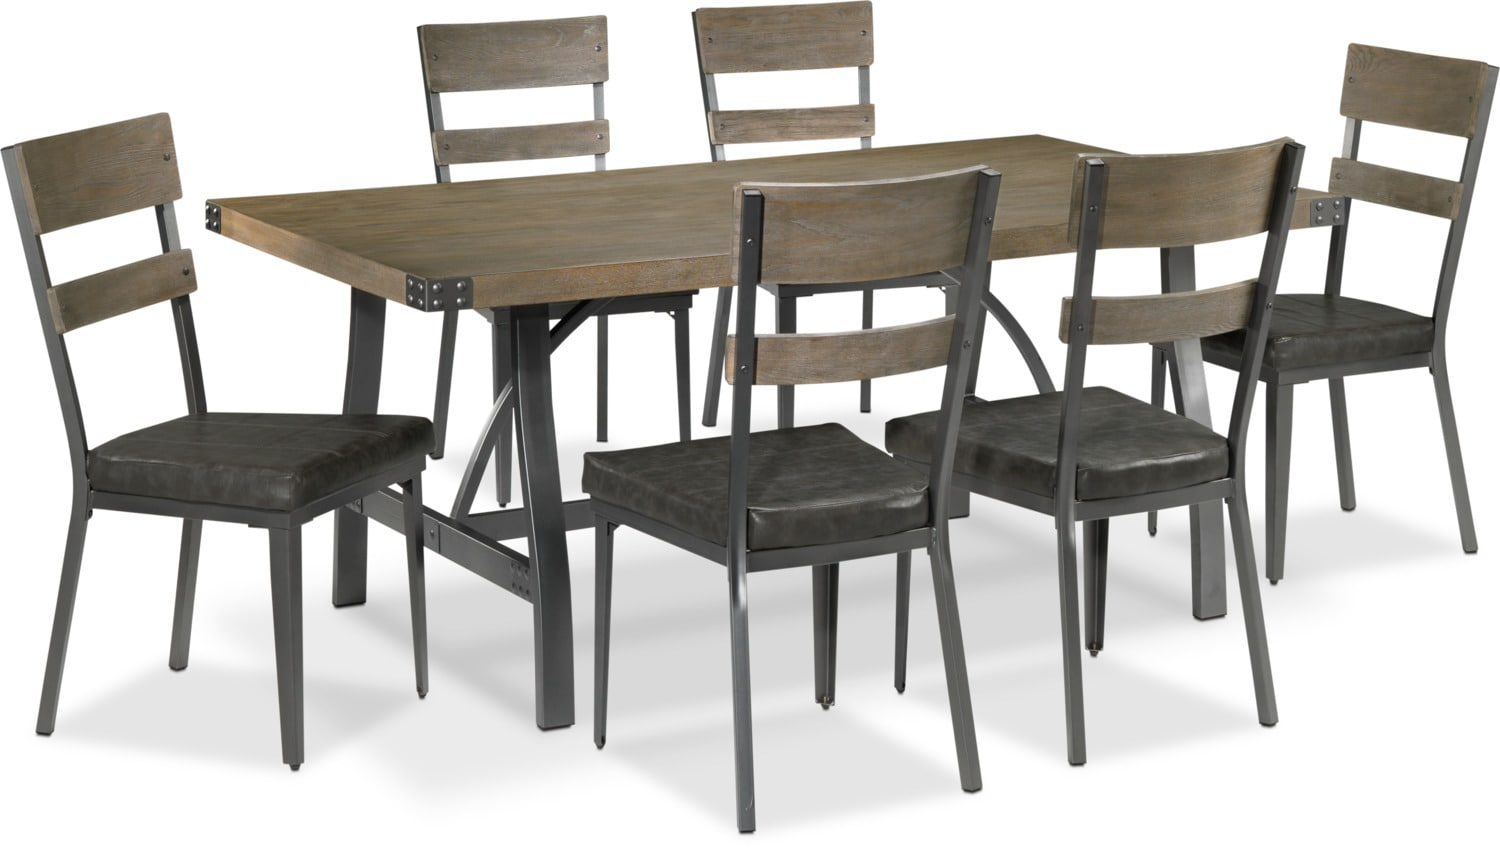 Danica 7-Piece Dinette Set - Rustic Pine and Grey